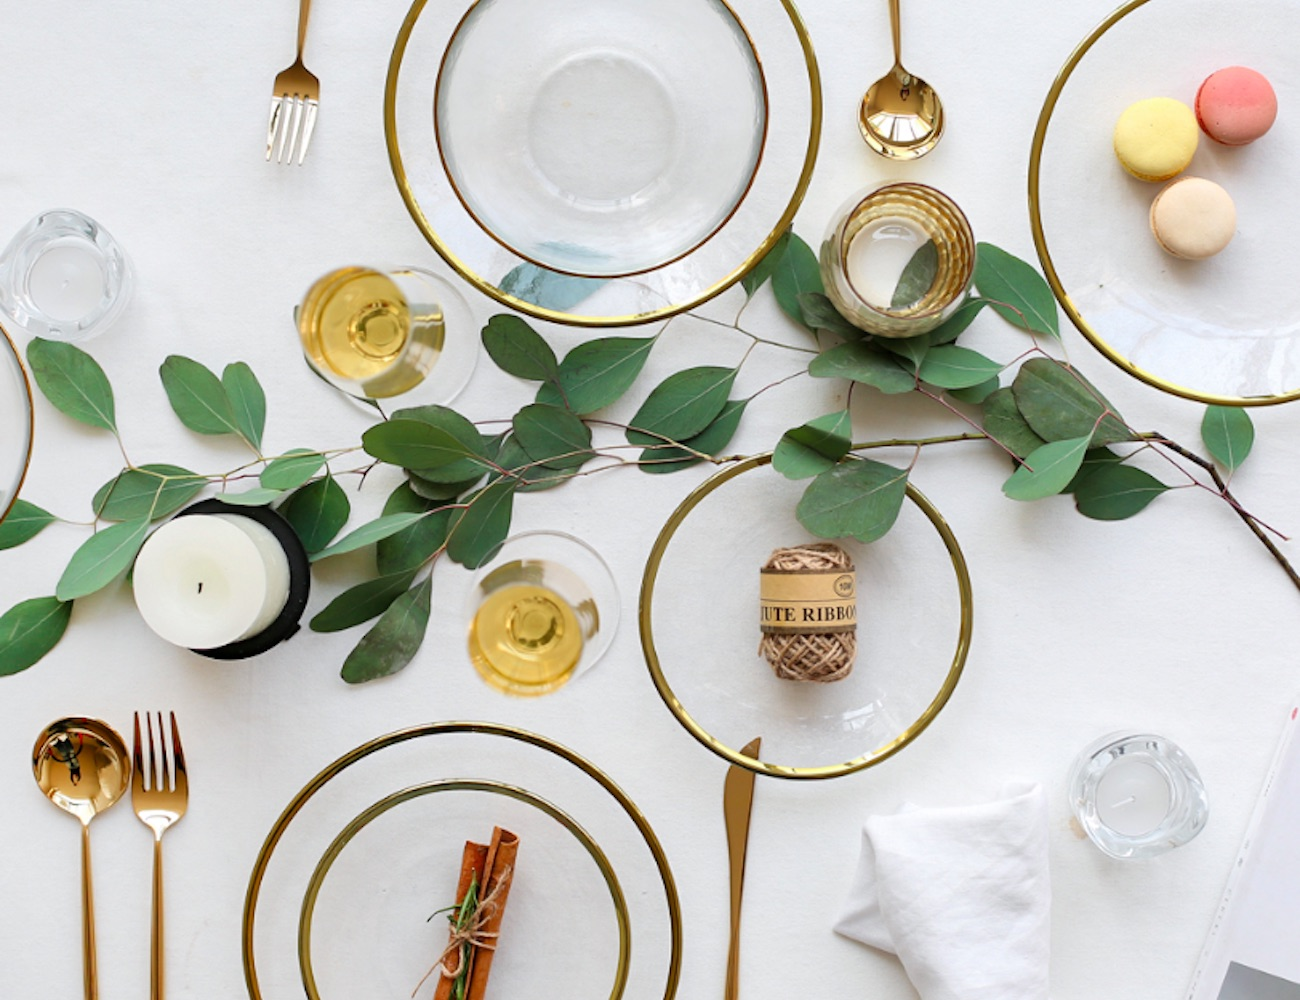 Modern Gold Edge Glass Serving Dishes are modern yet elegant